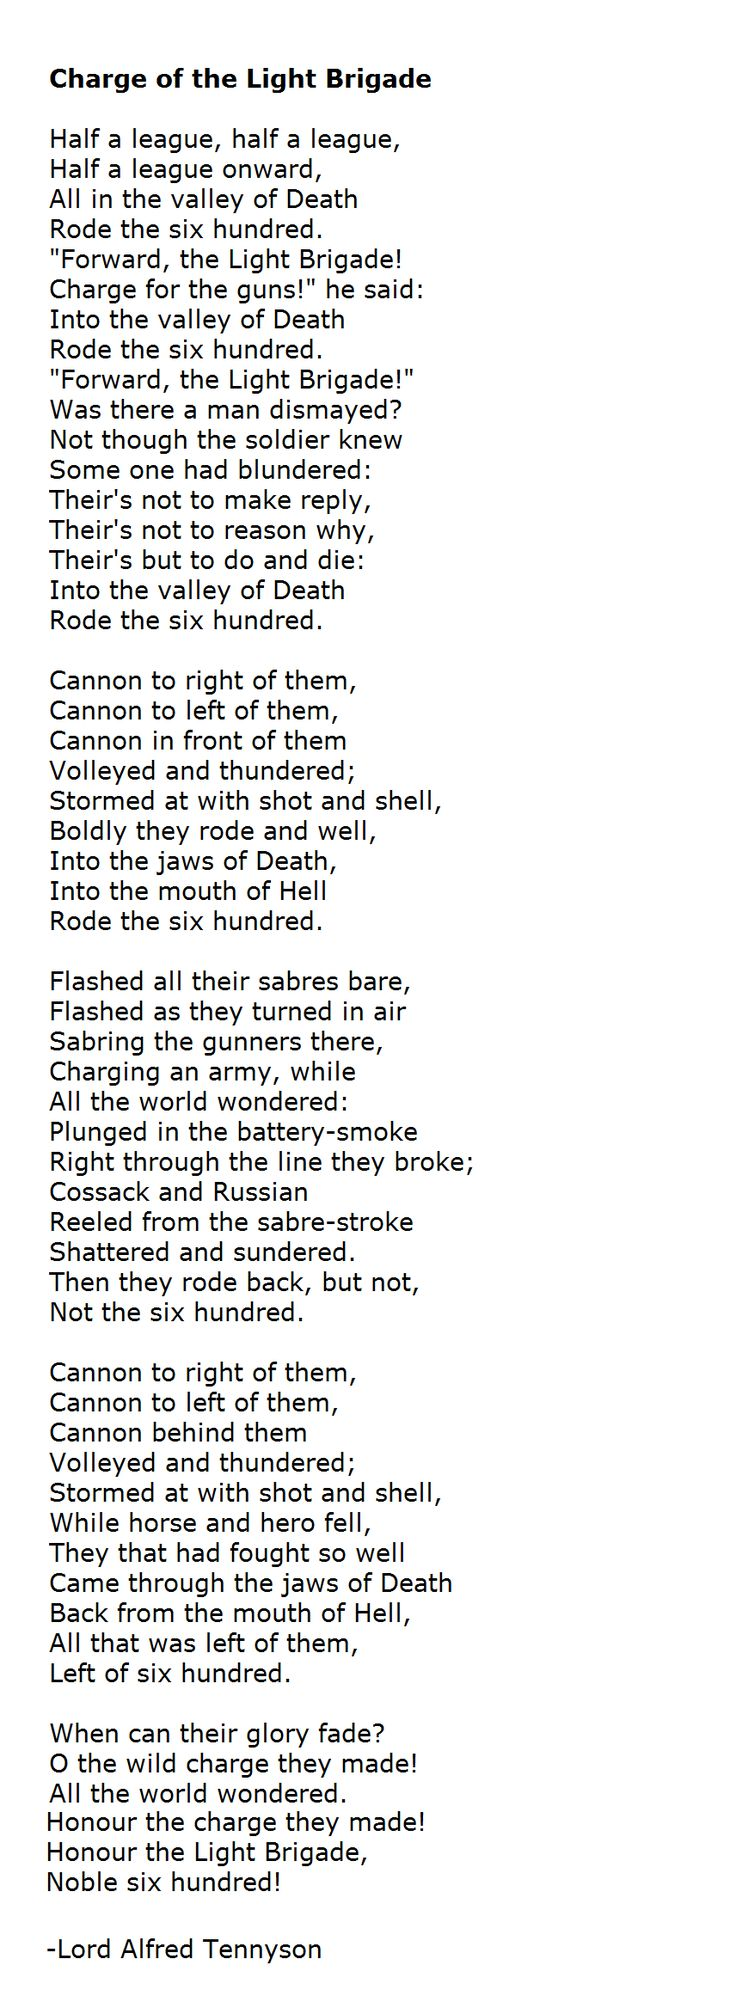 One of my favorite poems long before the Blind Side. Charge of the Light Brigade - Lord Alfred Tennyson